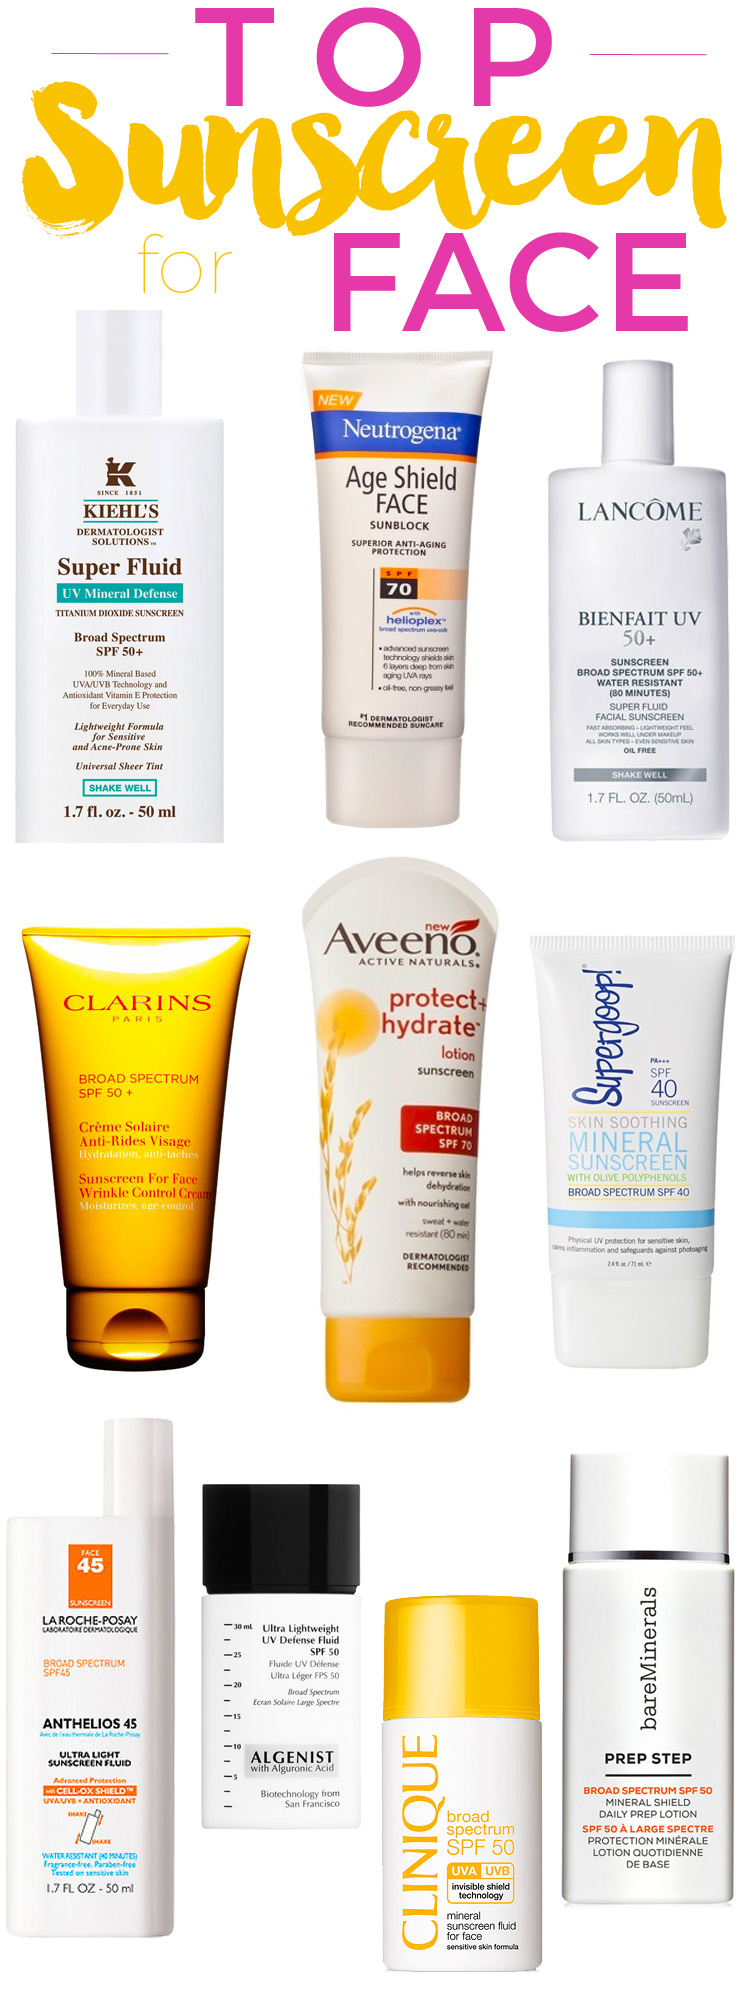 Tinted Sunscreen for Face - SPF 20 With